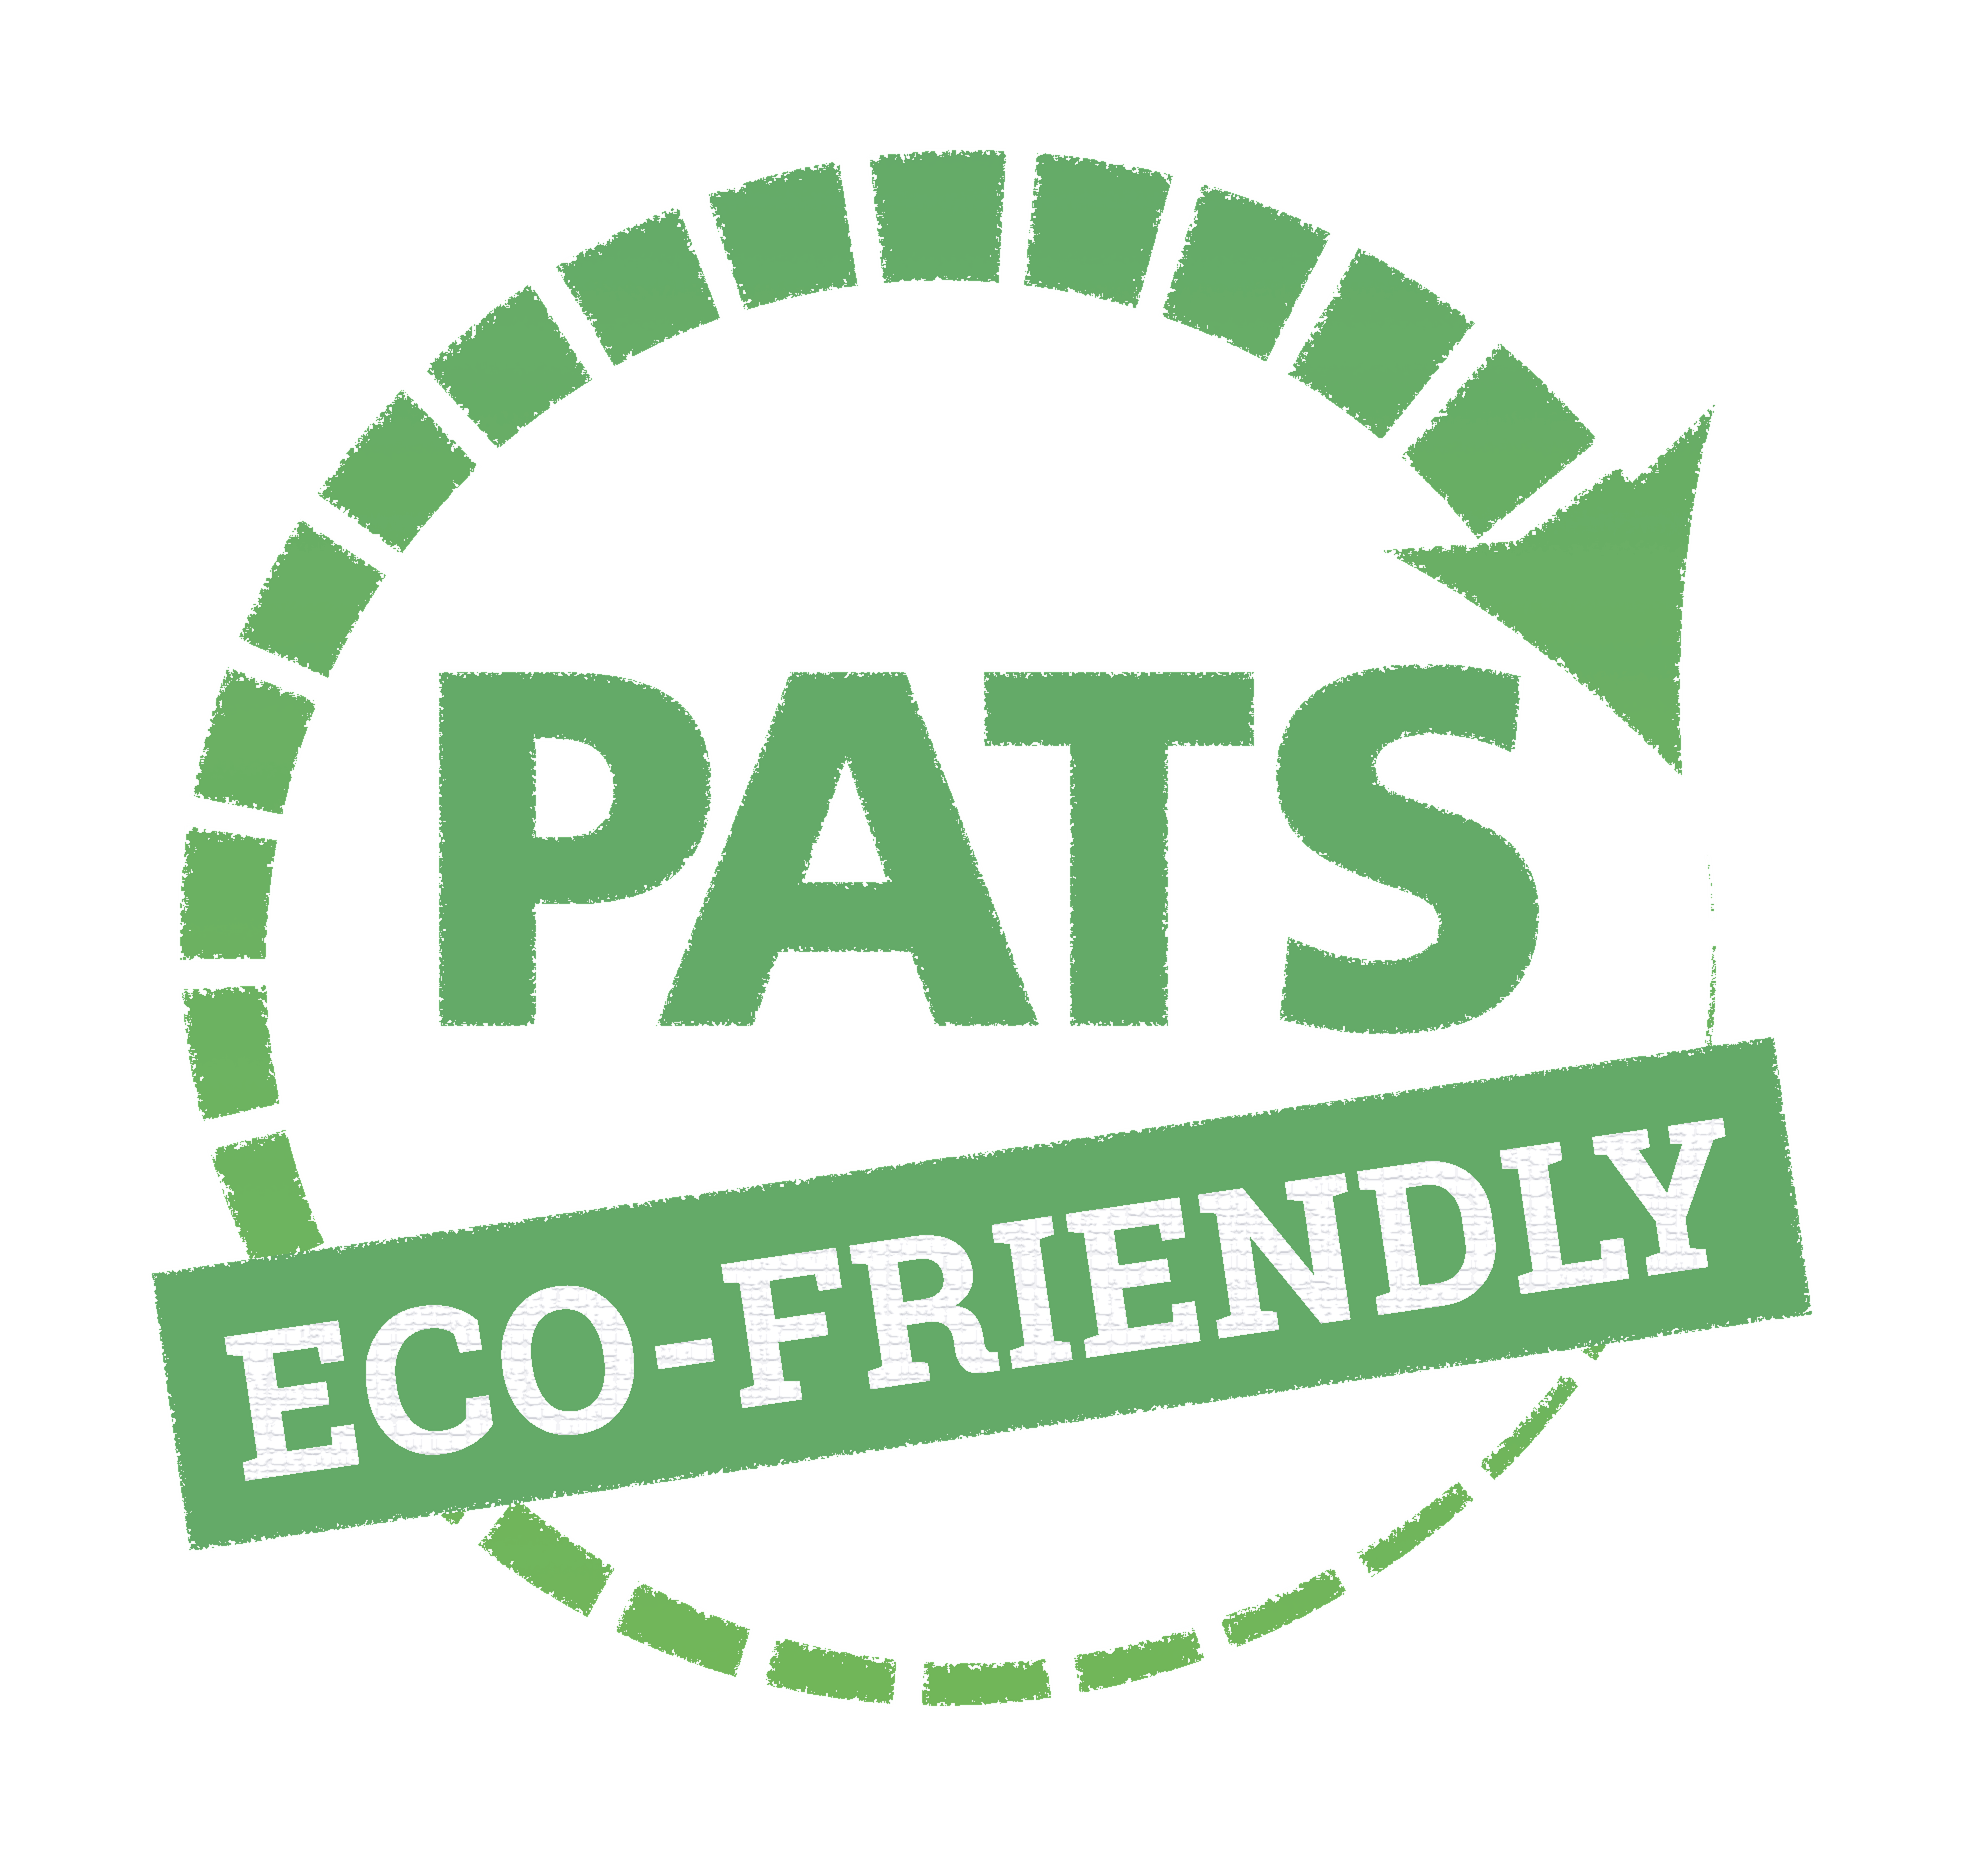 We are eco friendly